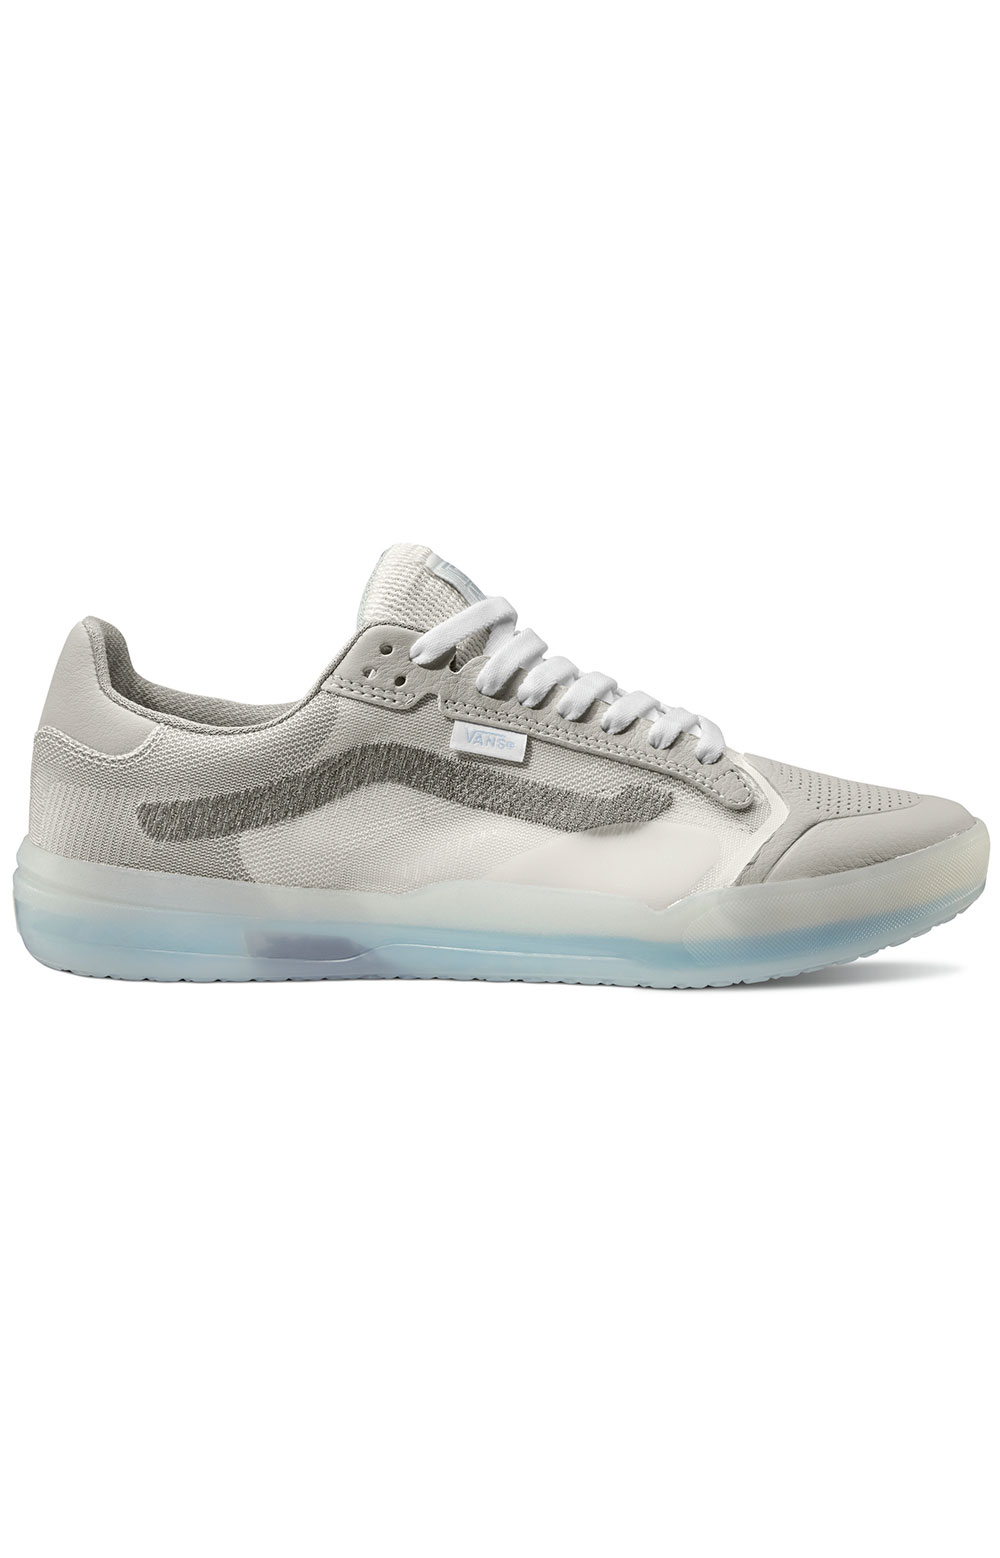 (DY76KL) Evdnt Ultimate Waffle Shoes - Grey/Multi